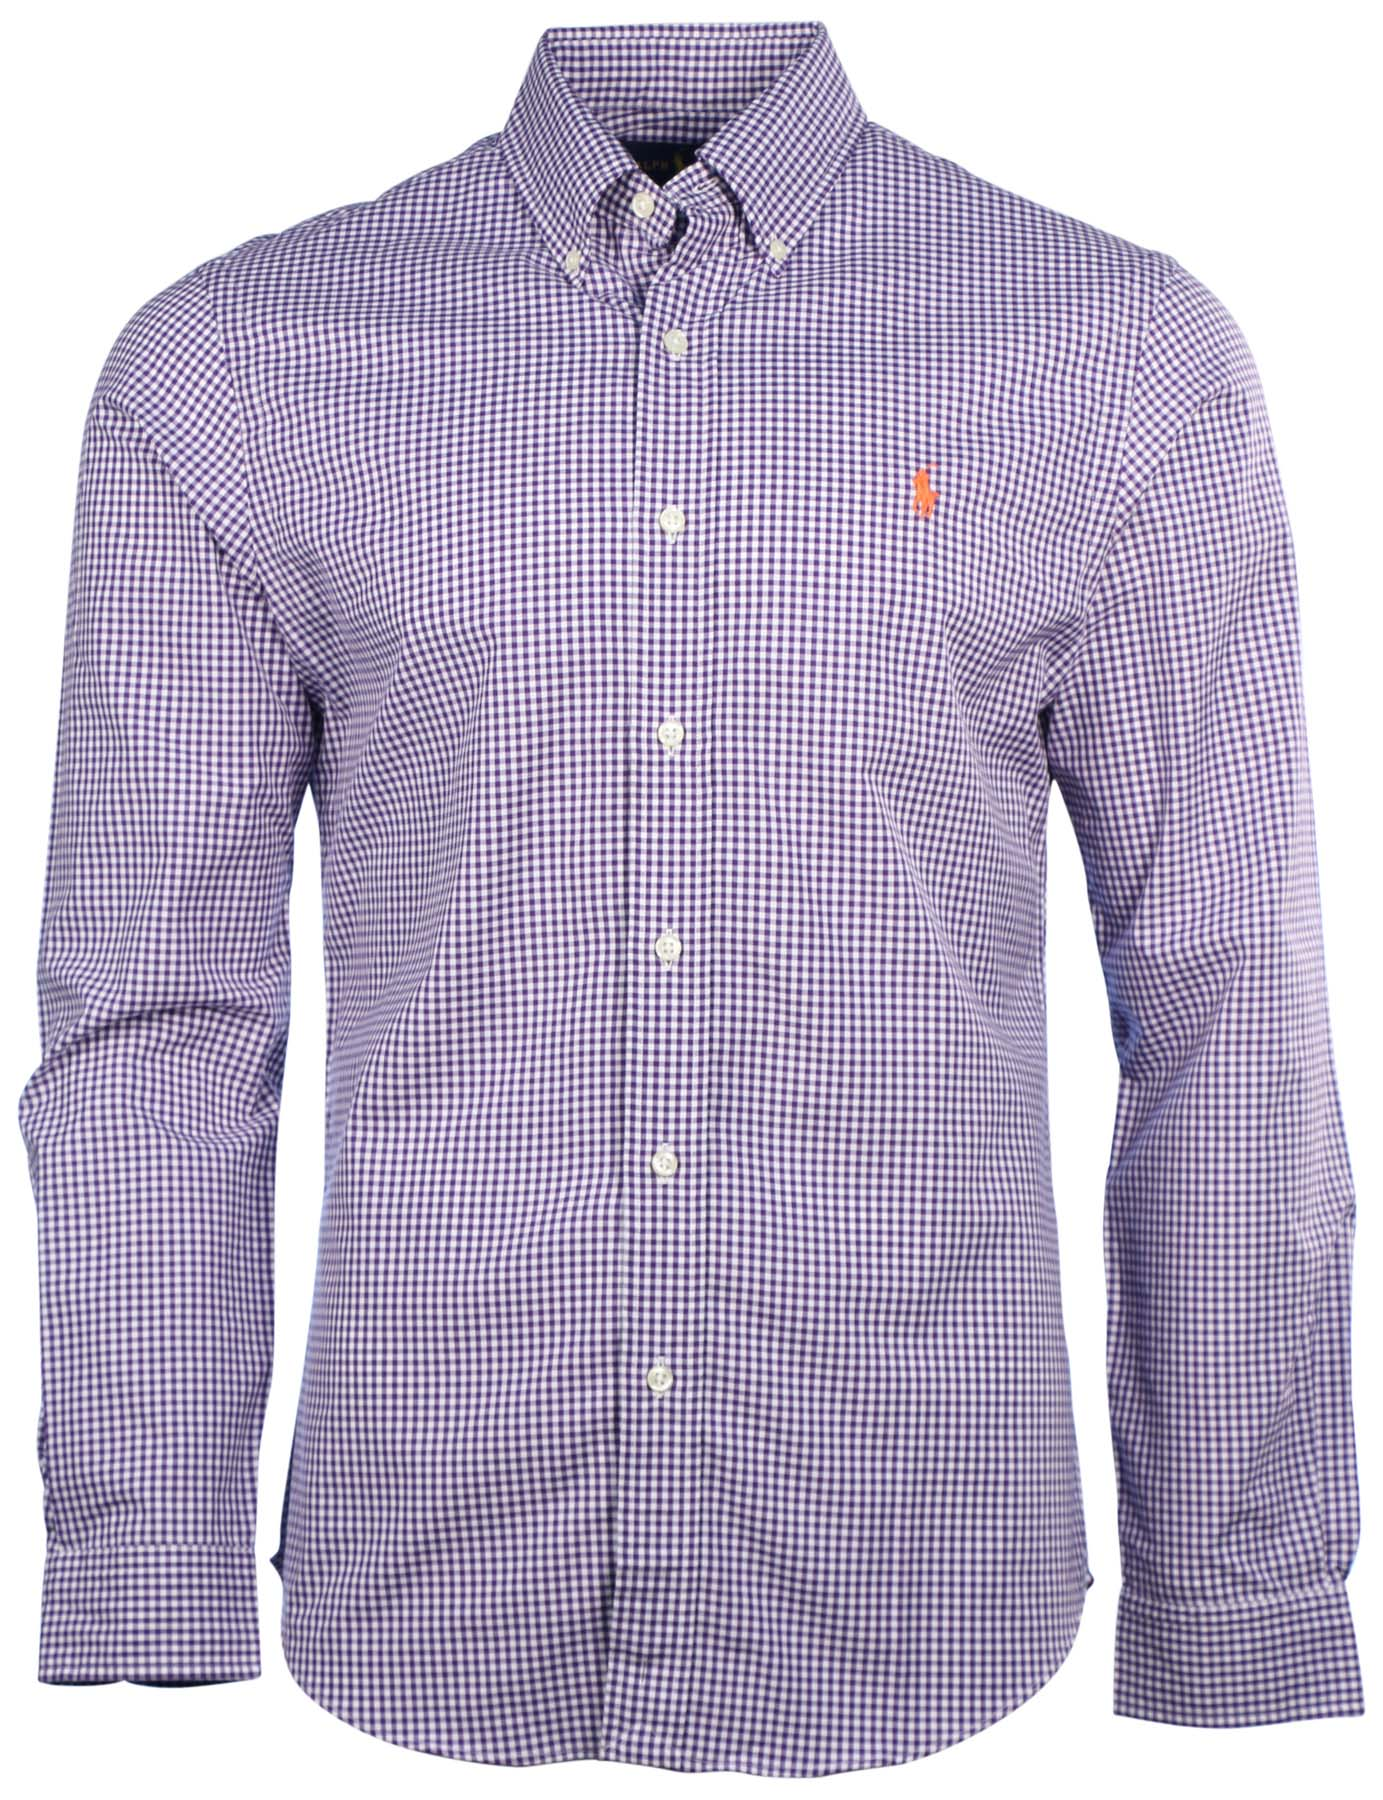 Polo ralph lauren men 39 s slim fit gingham button down shirt for Athletic fit button down shirts